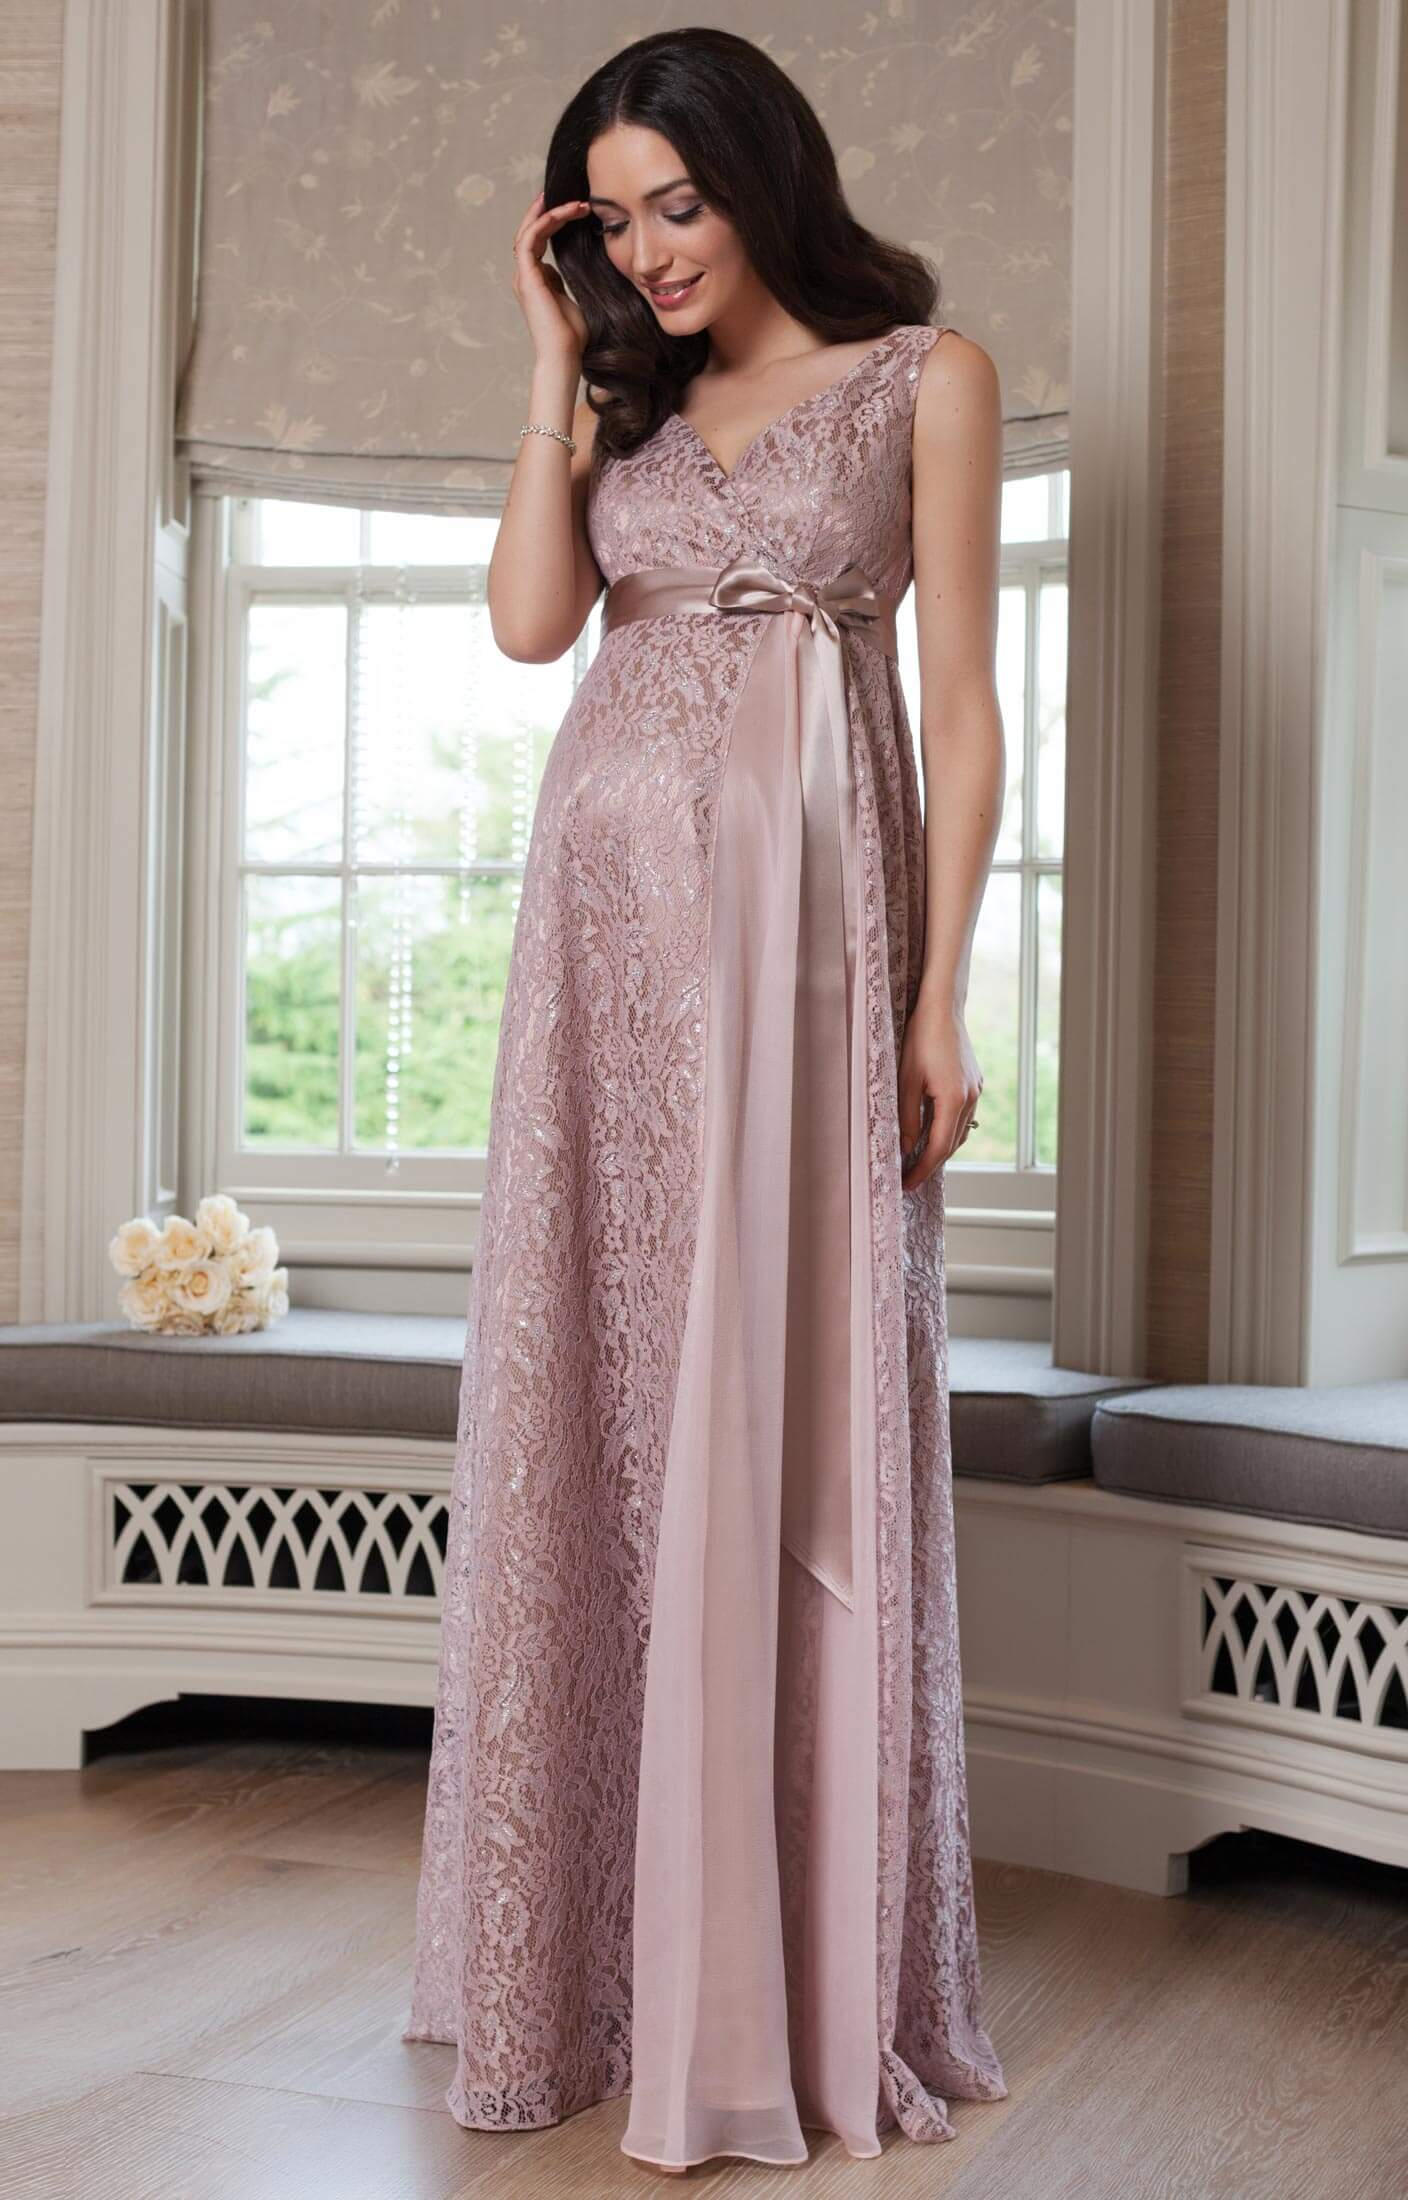 Thea Maternity Gown Long Blush - Maternity Wedding Dresses, Evening ...